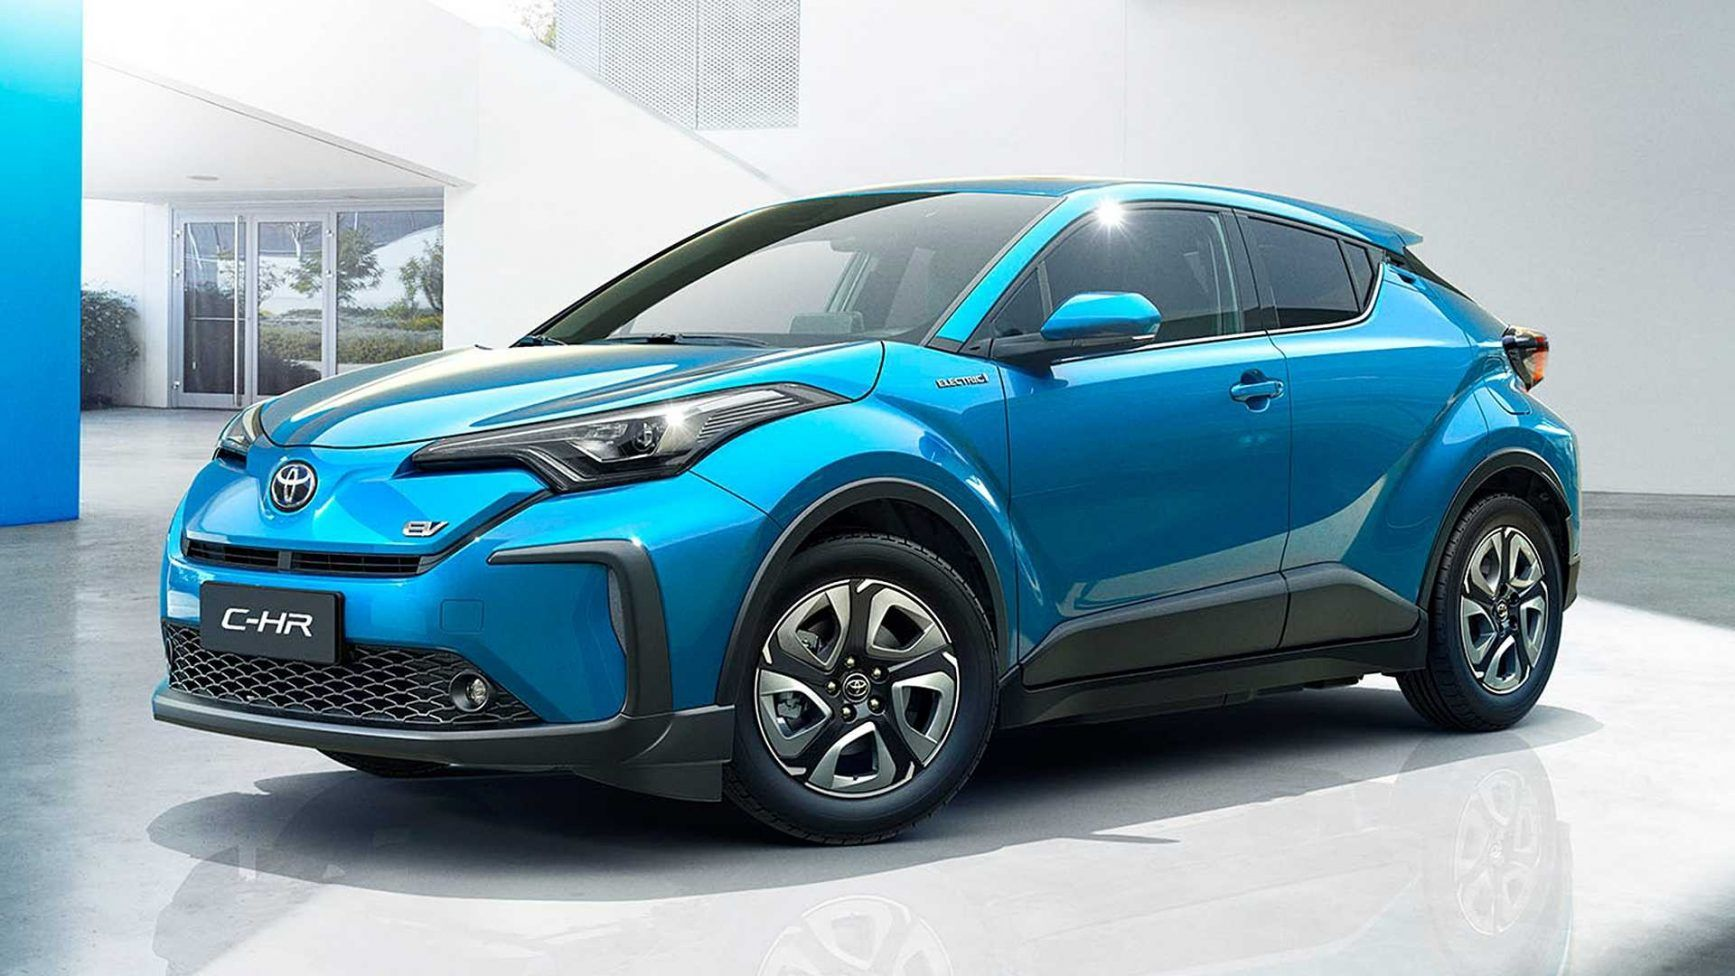 The New 2021 Toyota C Hr Should Be A Completely Electric Car The First One After A Long Time Of Preparation And Developing And Likewis In 2020 Toyota C Hr Toyota Car